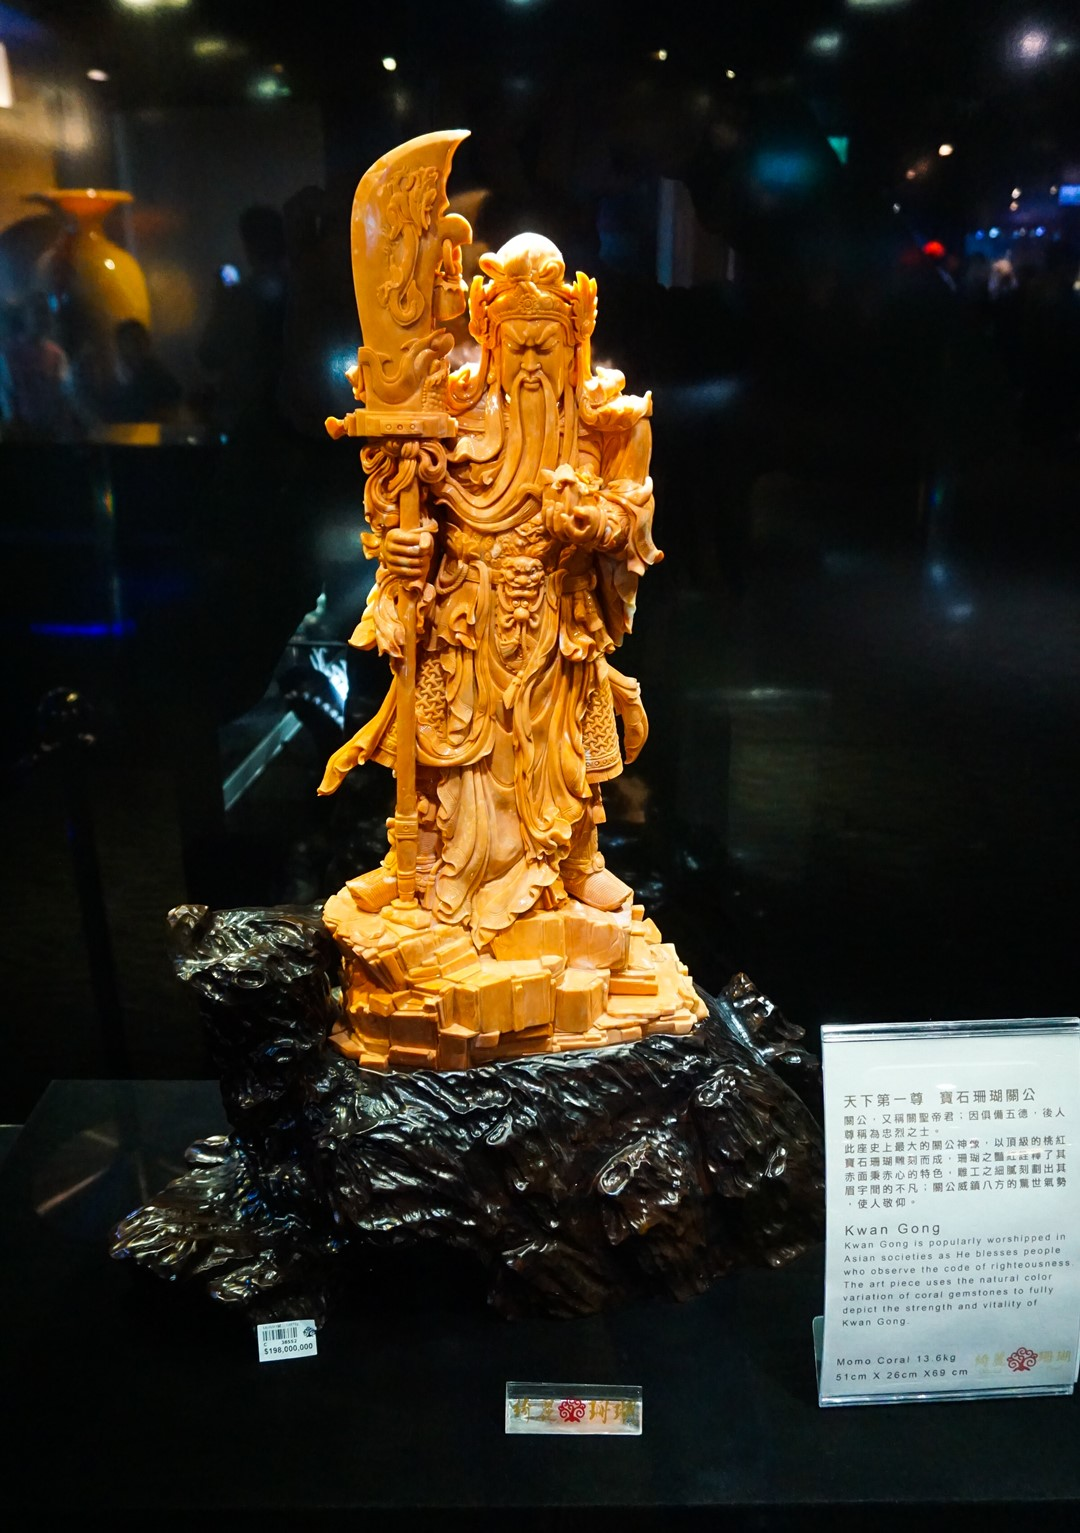 Kwan Gong statue from Momo coral worth 5.7 million €